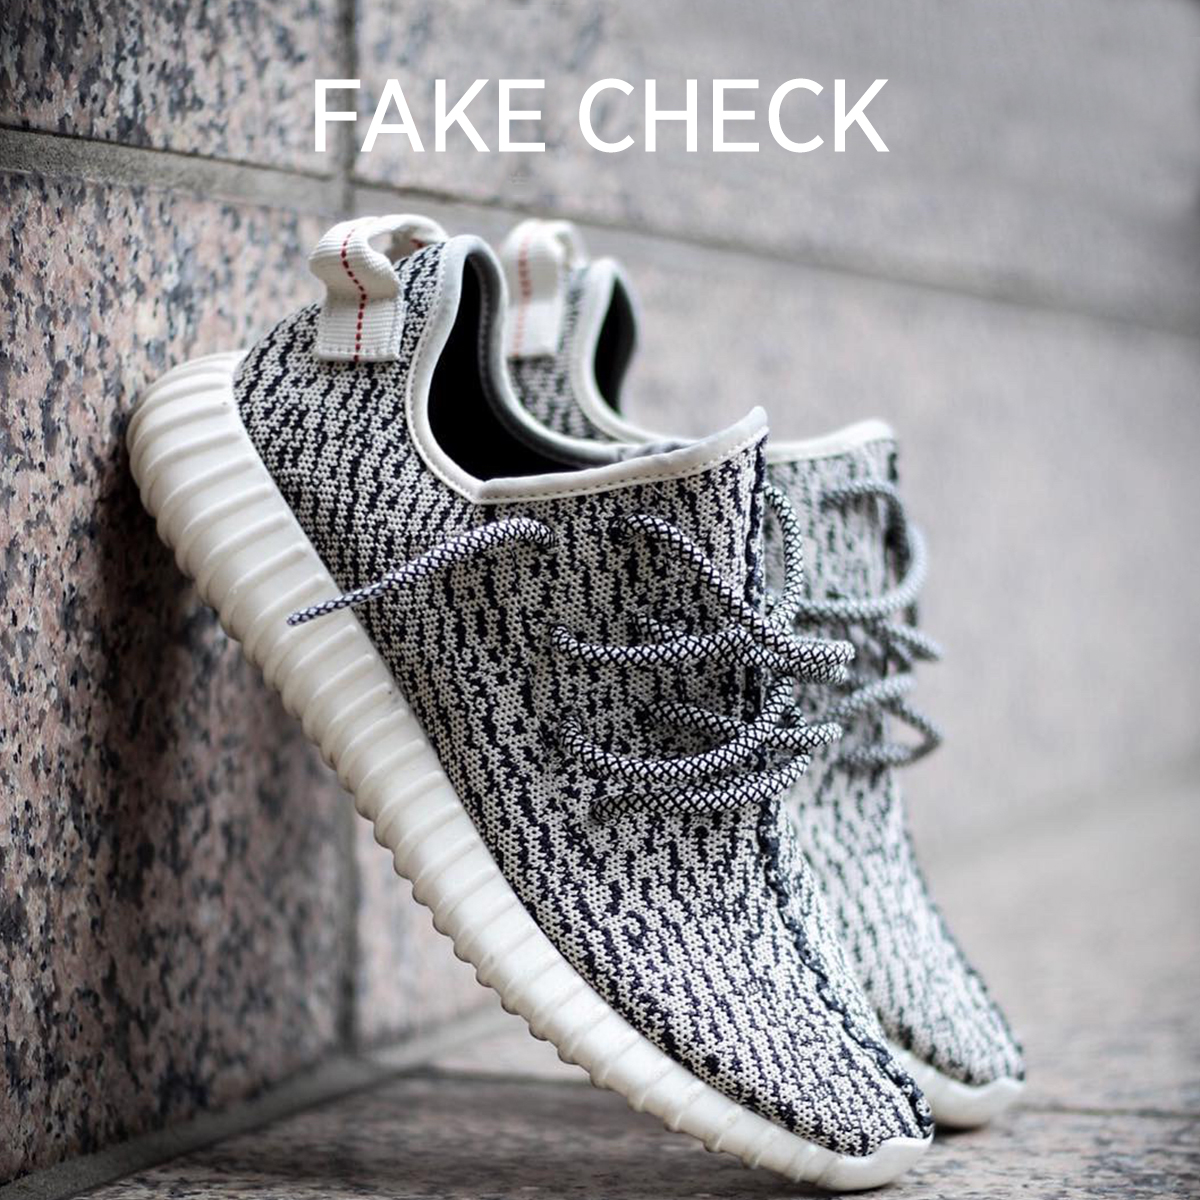 adidas Yeezy 350 Fake Check Turtle Dove